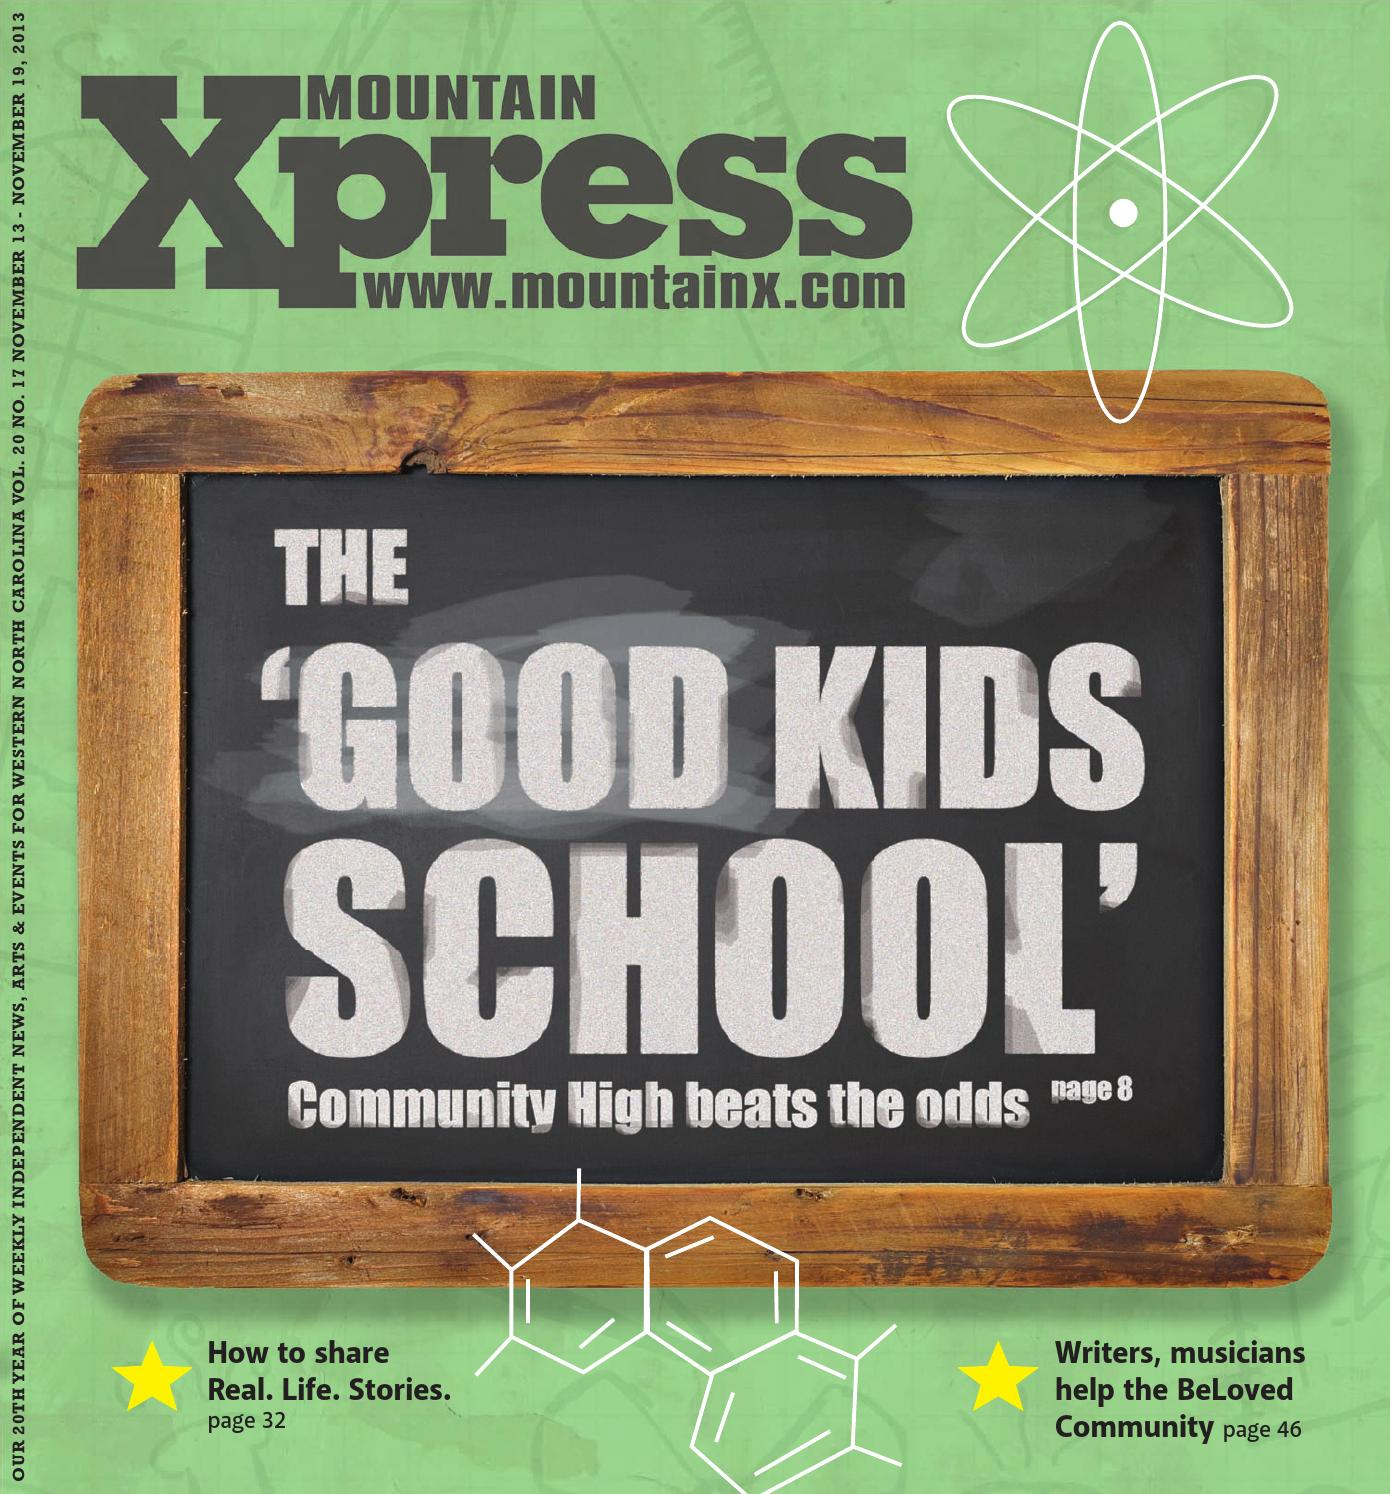 ce0bc7c40a64 Mountain Xpress 11.13.13 by Mountain Xpress - issuu